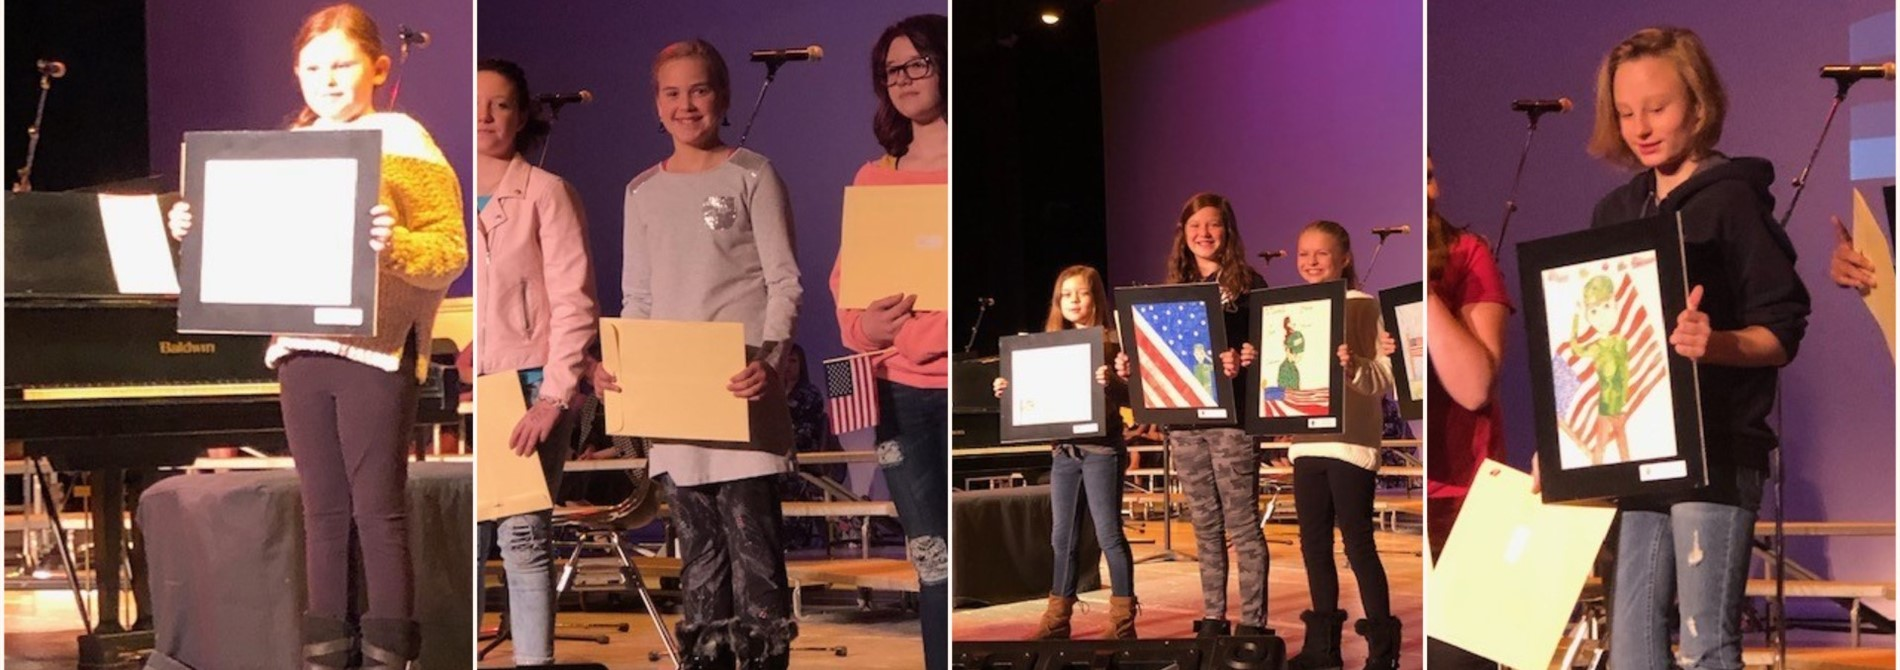 Muskingum County Veterans Day Essay and Artwork Contest Award Winners